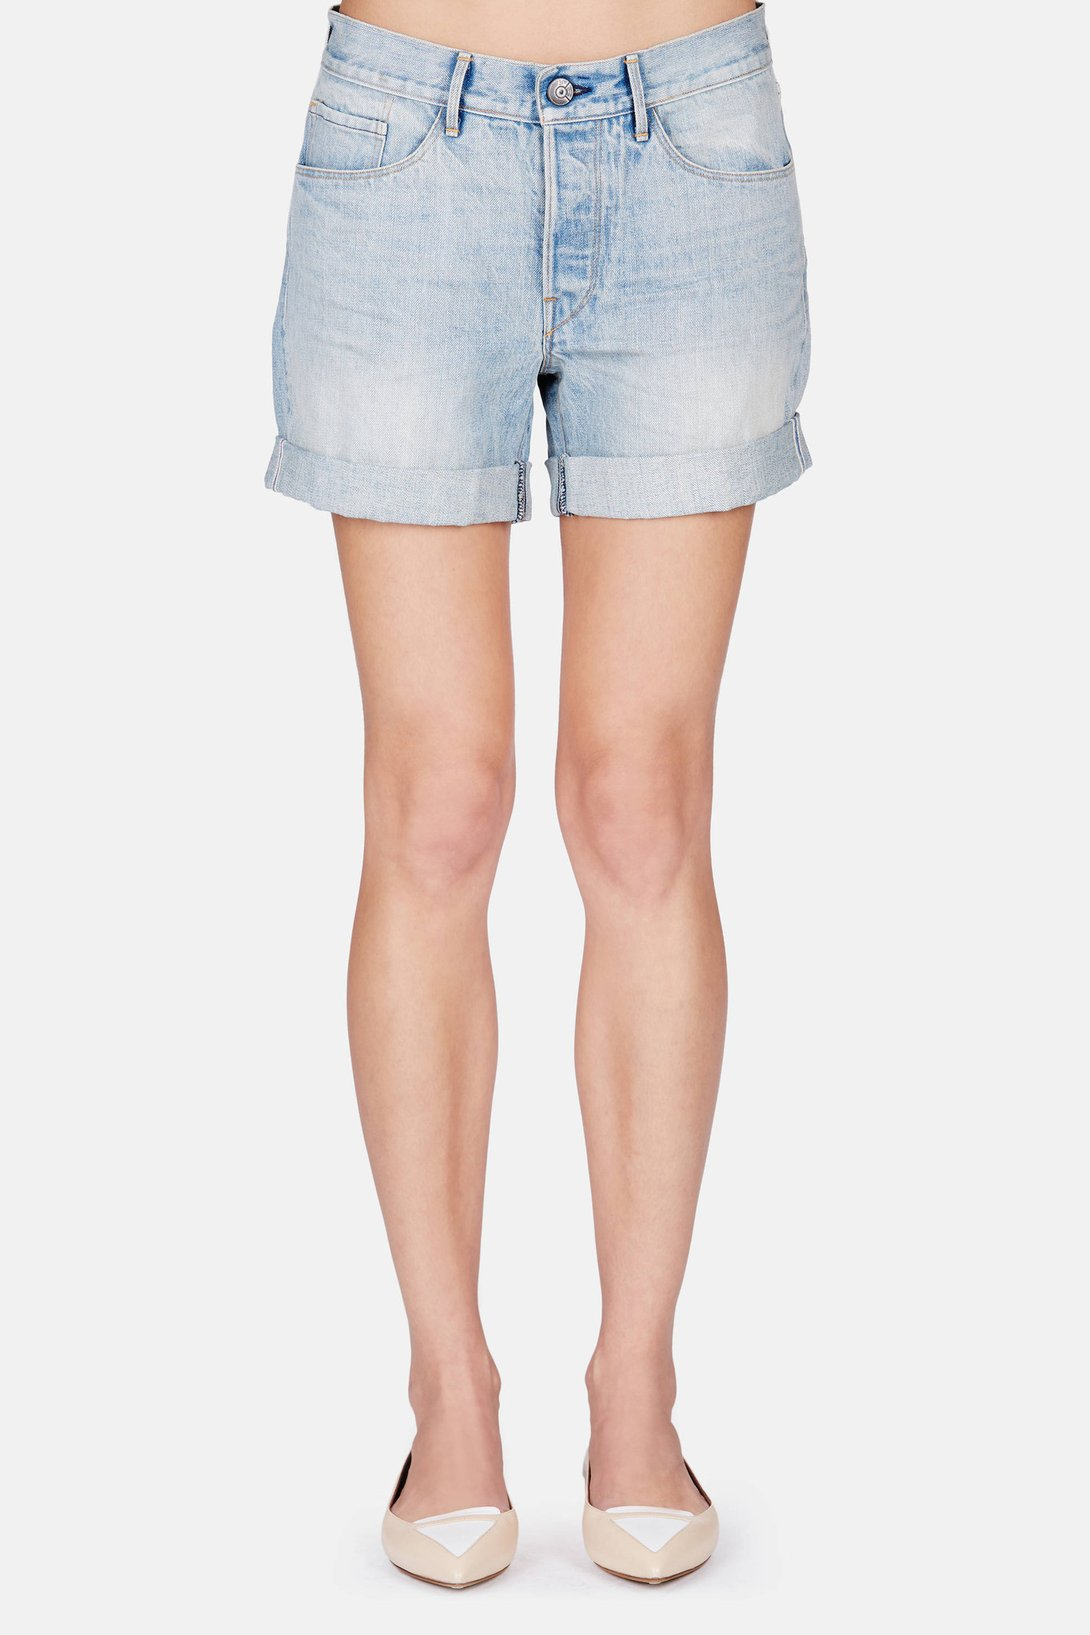 3fd63833179c Shop 3 x 1 Washed Boyfriend Short in Light Blue Vintage from The ...